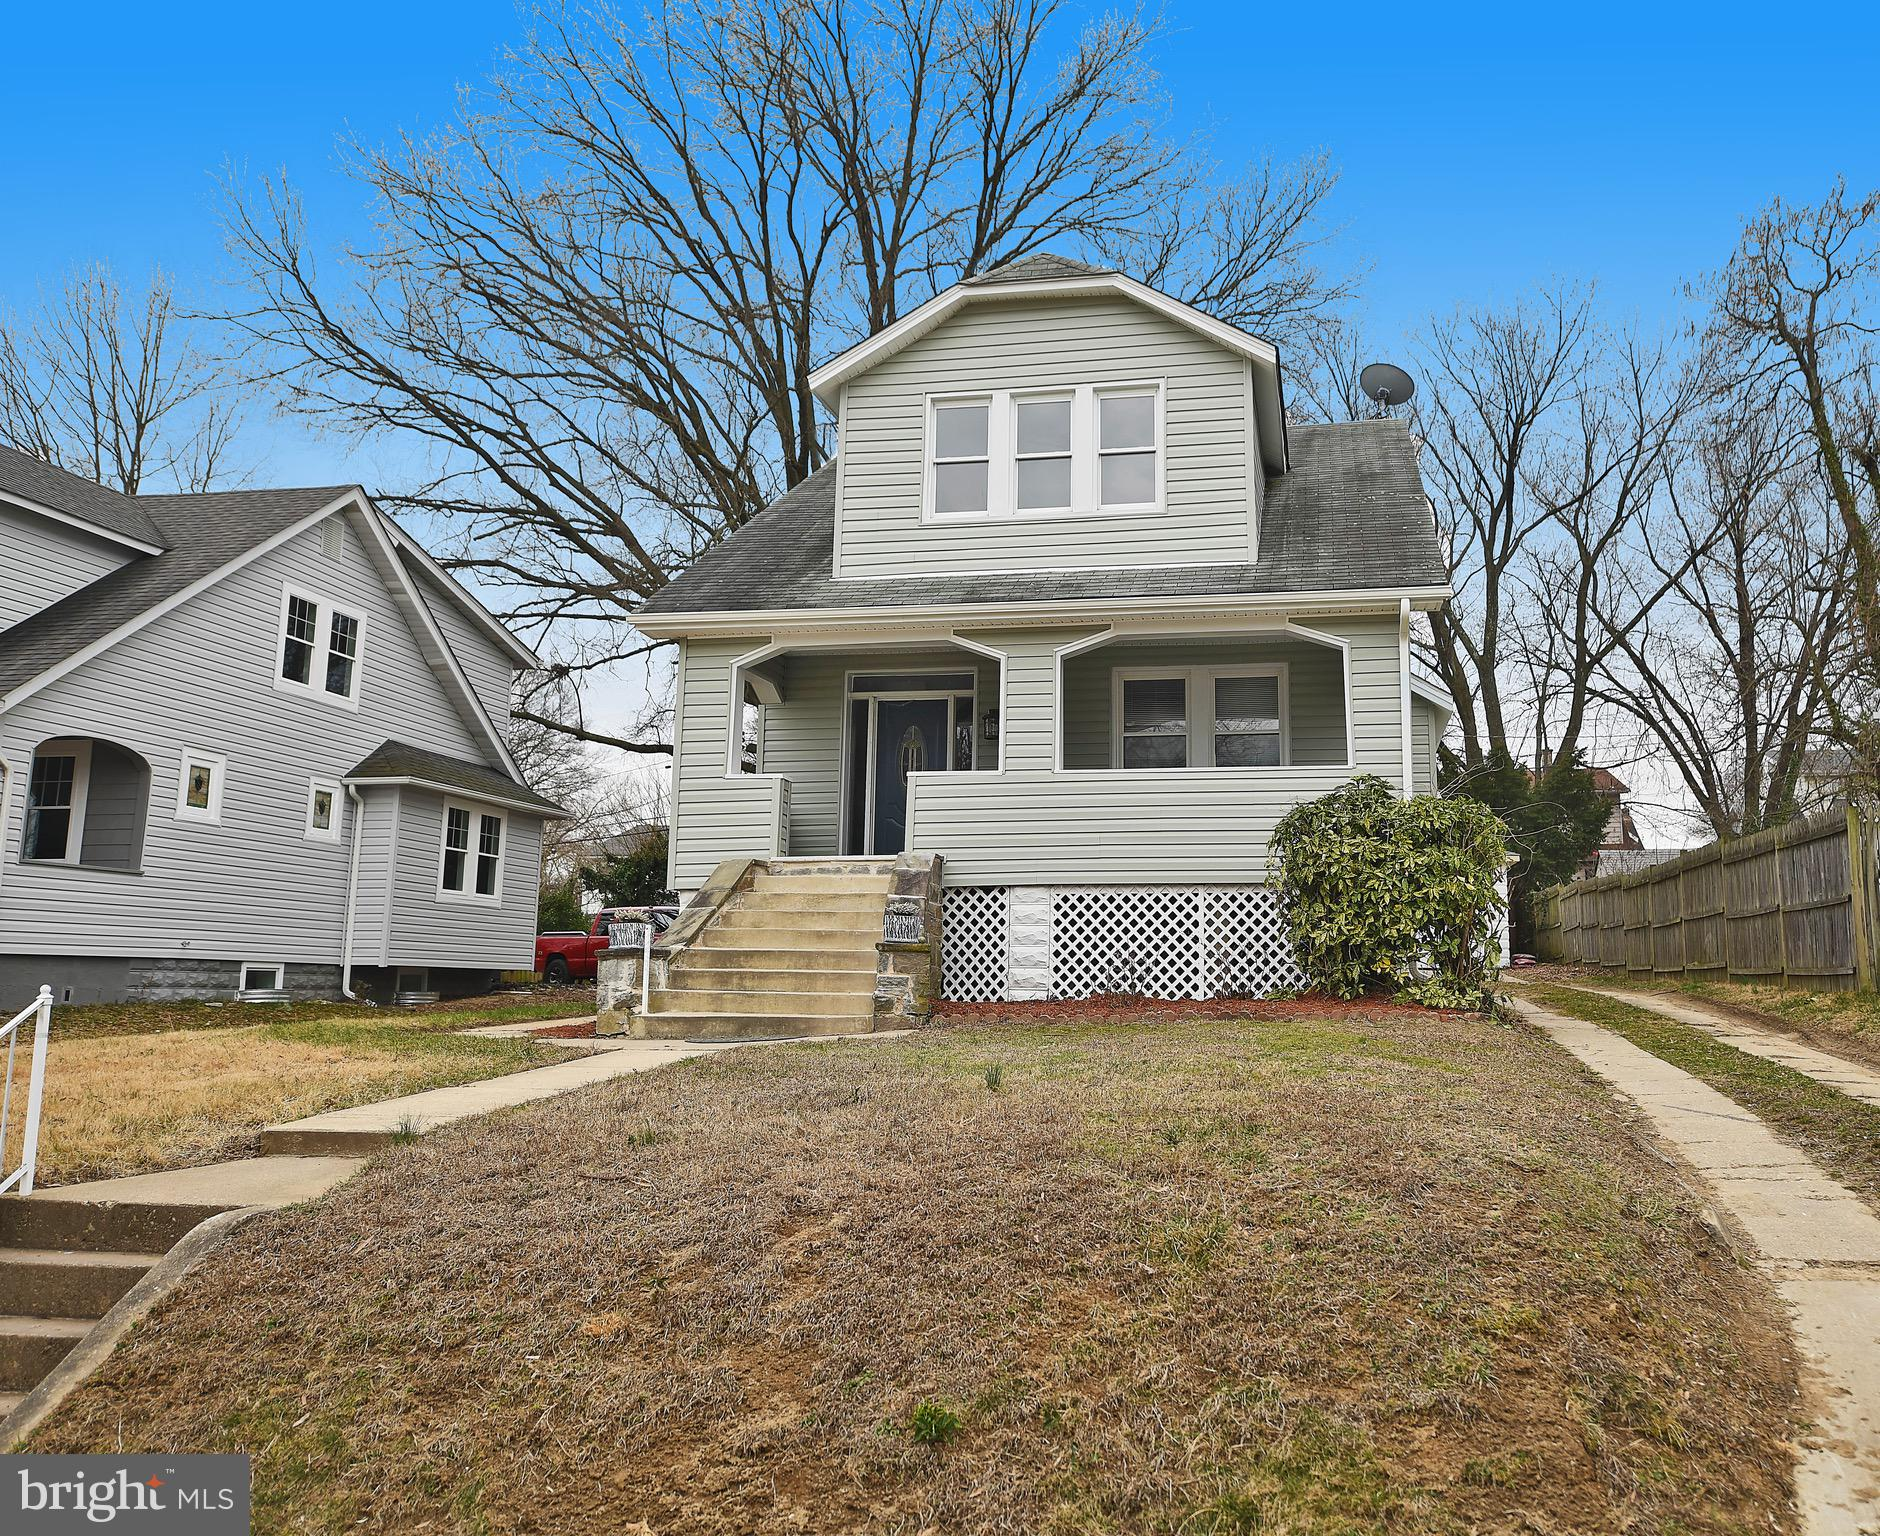 2825 PINEWOOD AVENUE, BALTIMORE, MD 21214